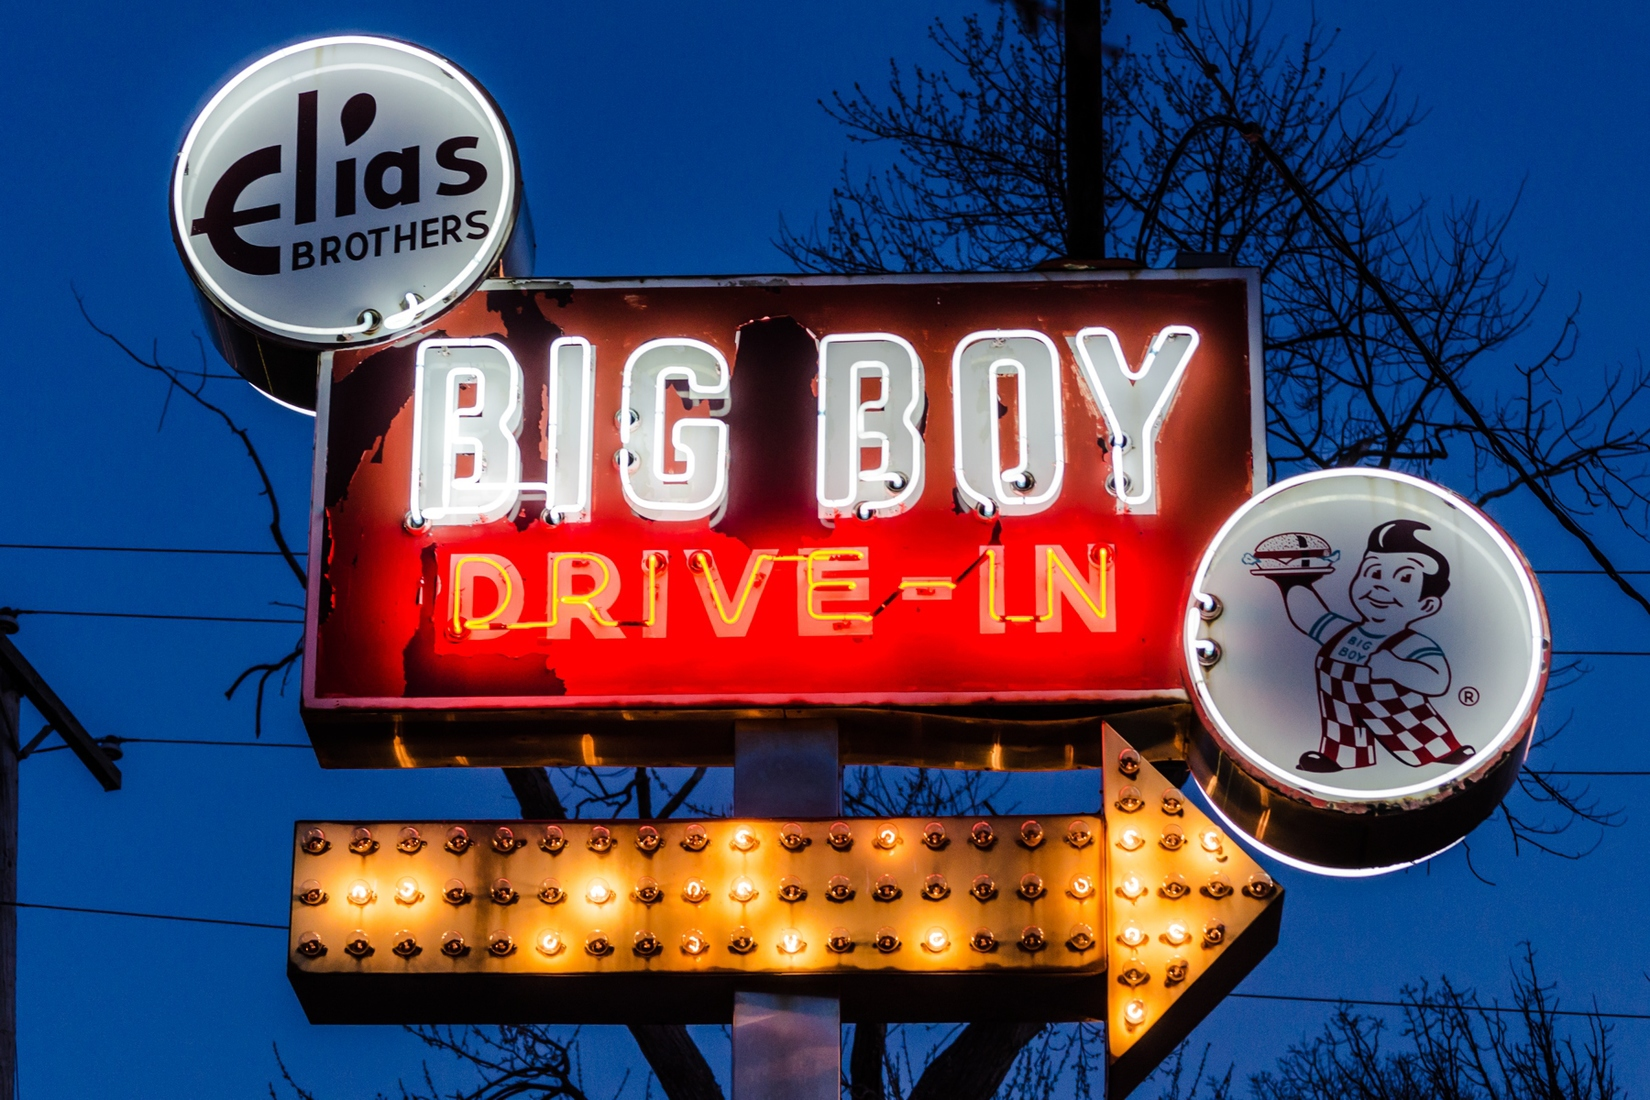 Neon Big Boy Drive-In - Full view